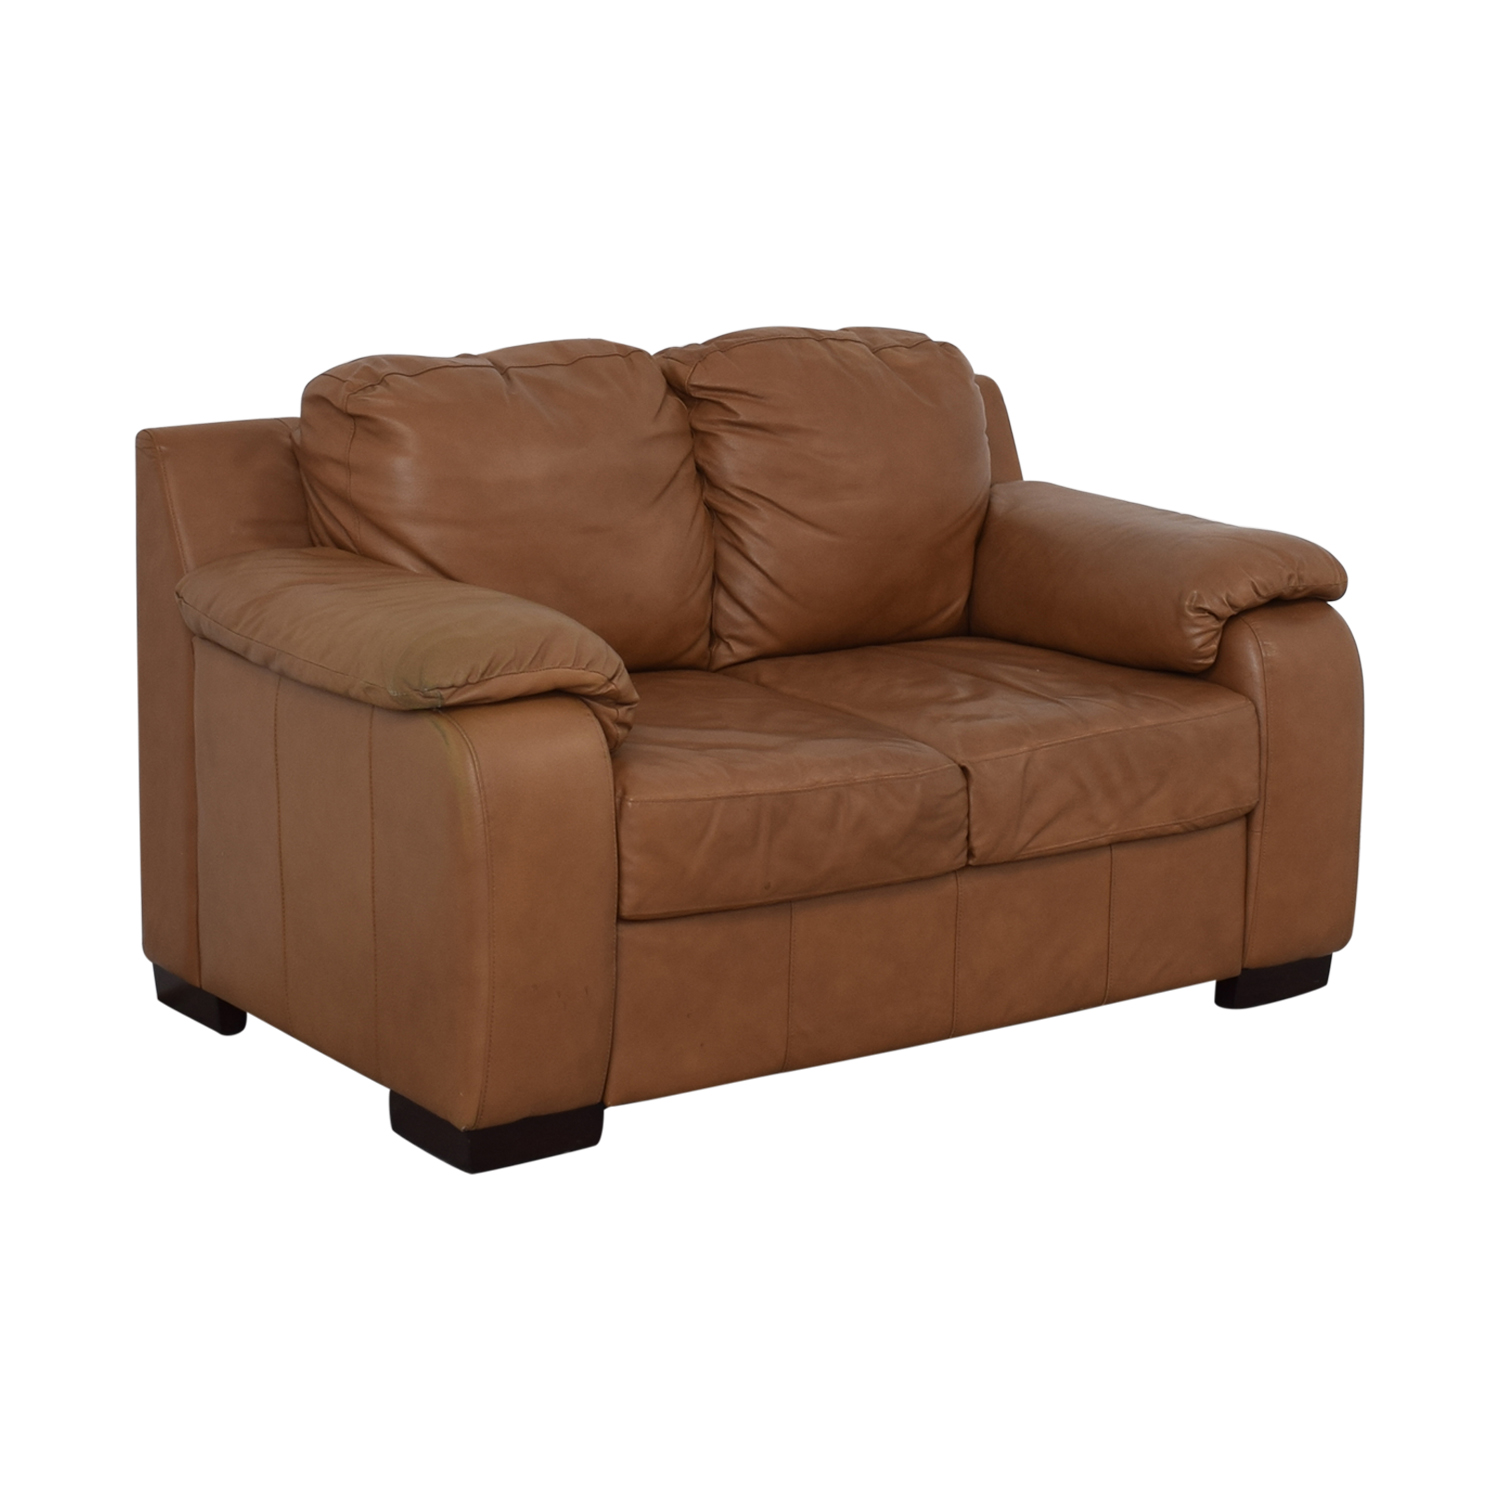 Jennifer Furniture Jennifer Furniture Cognac Two-Cushion Loveseat nj